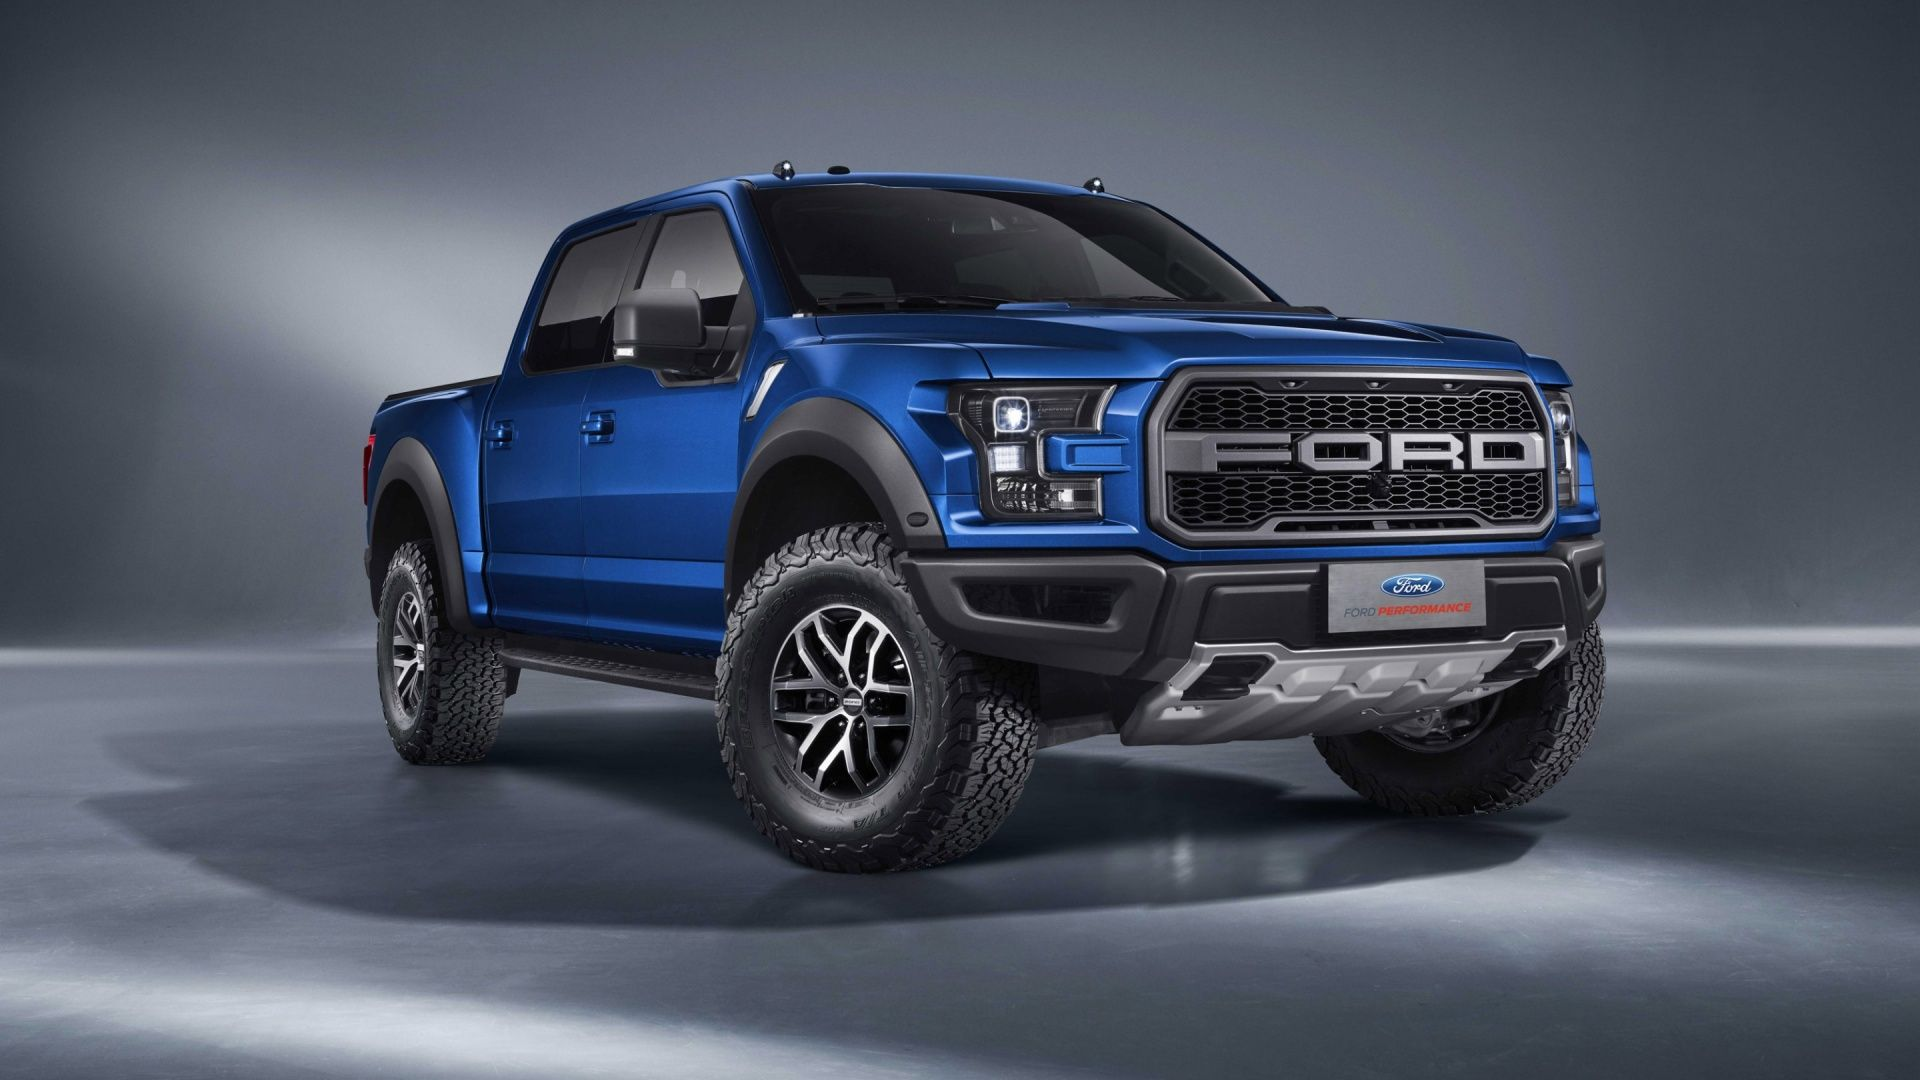 Ford F 150 Raptor Supercrew 2017 Wallpapers 1920x1080 430282 Ford Raptor Ford F150 Raptor Ford Raptor 2017